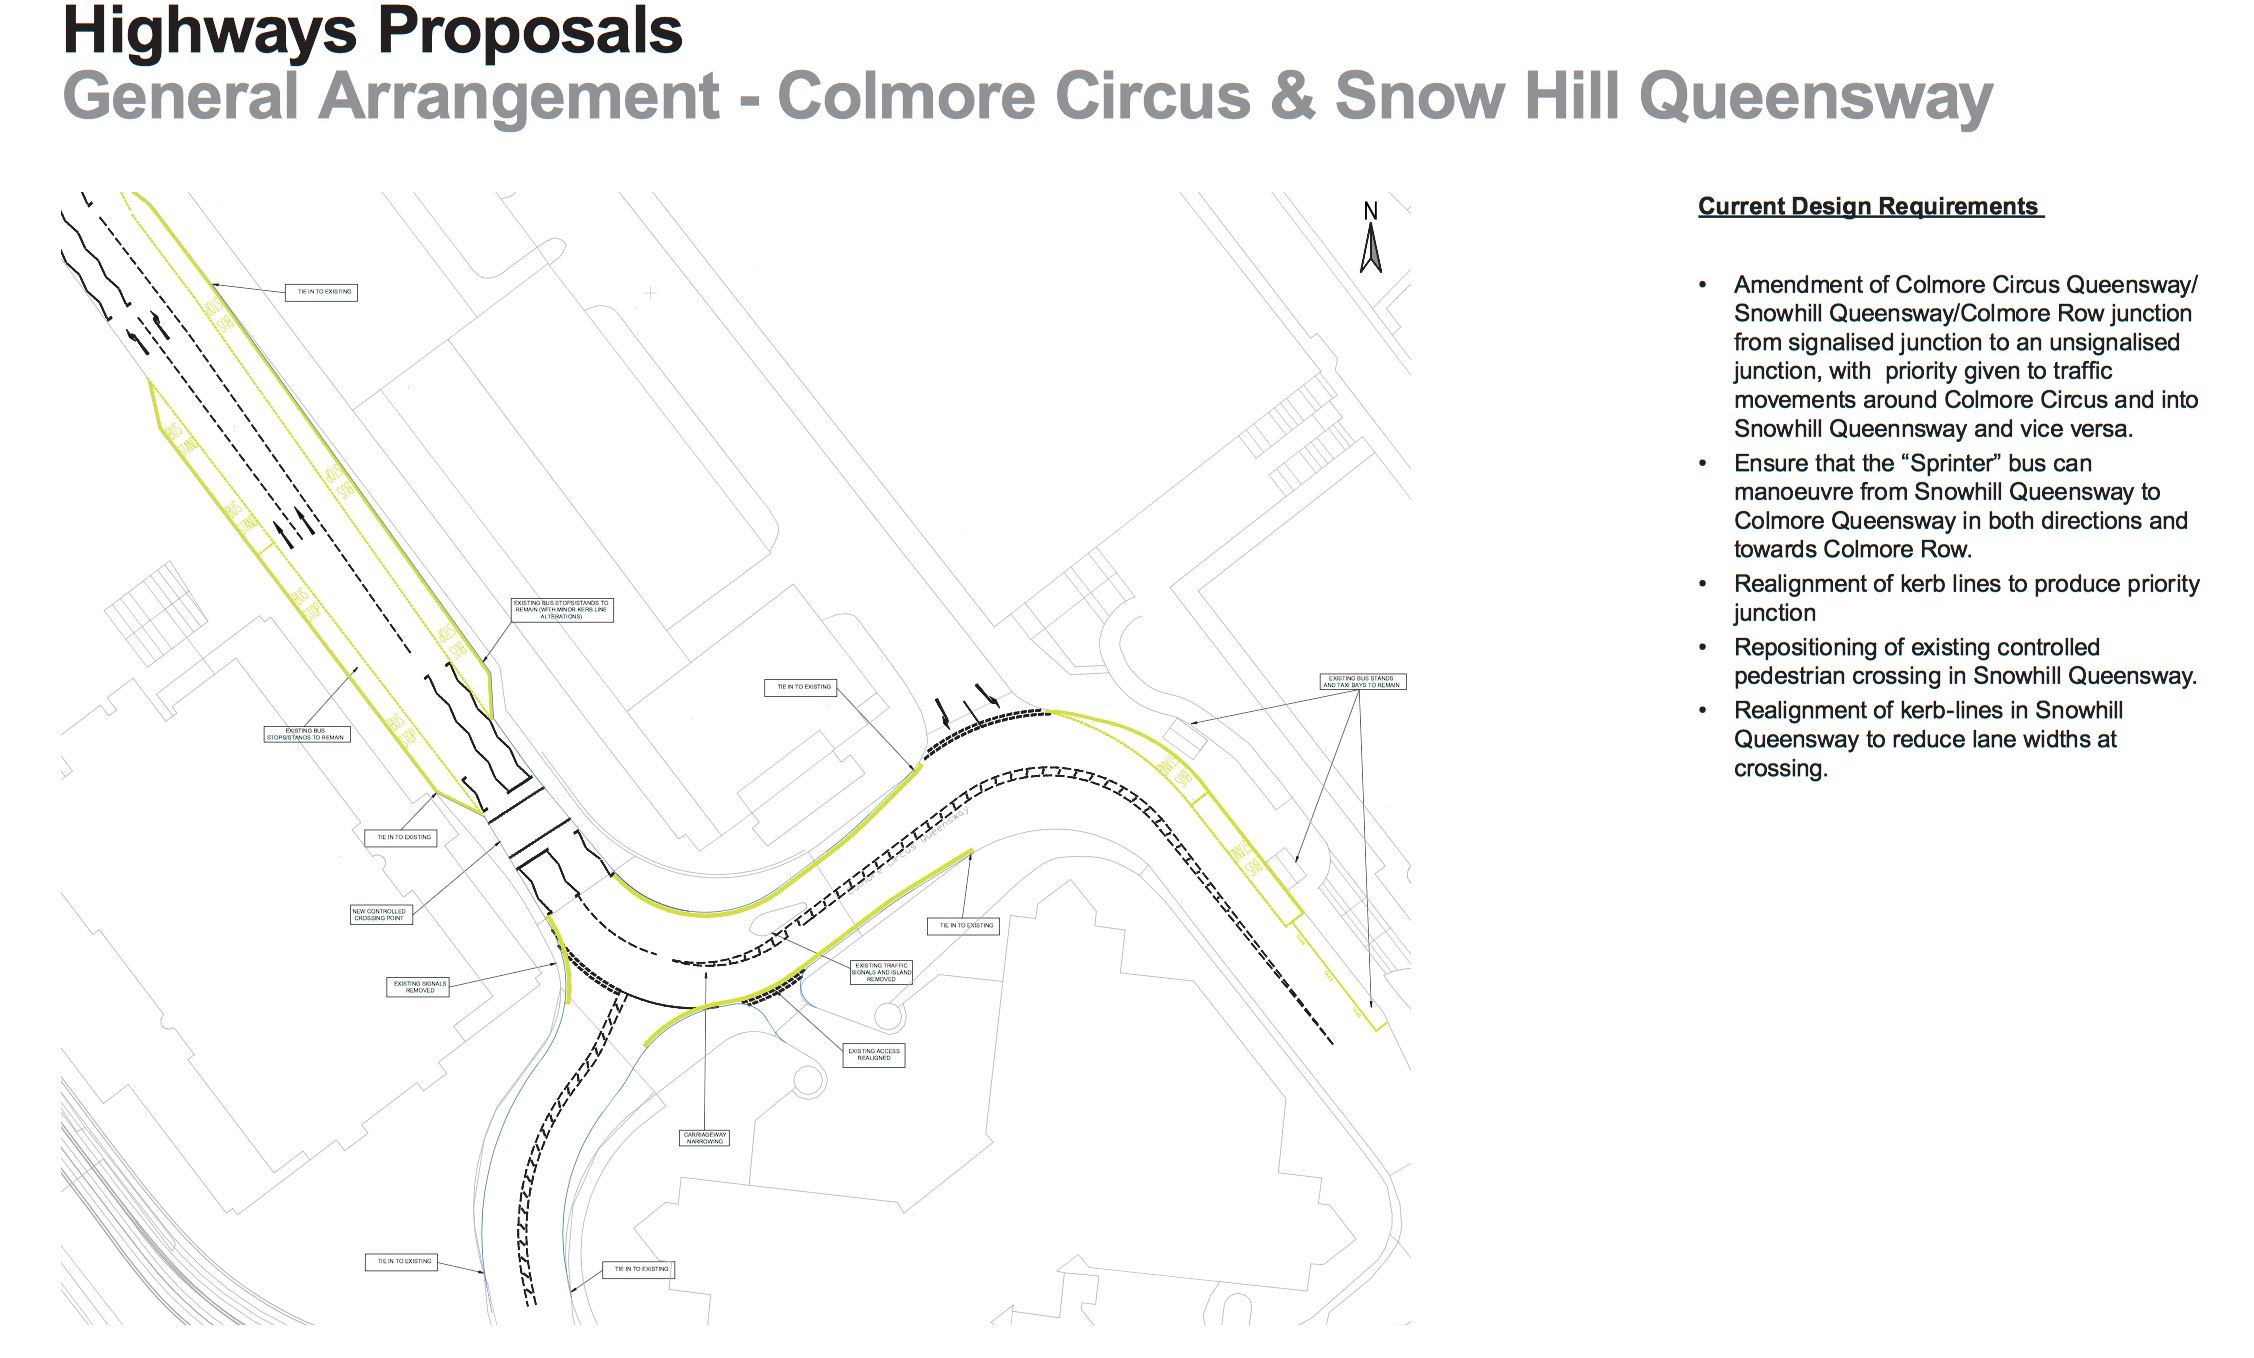 Plans showing the proposed changes to Colmore Circus